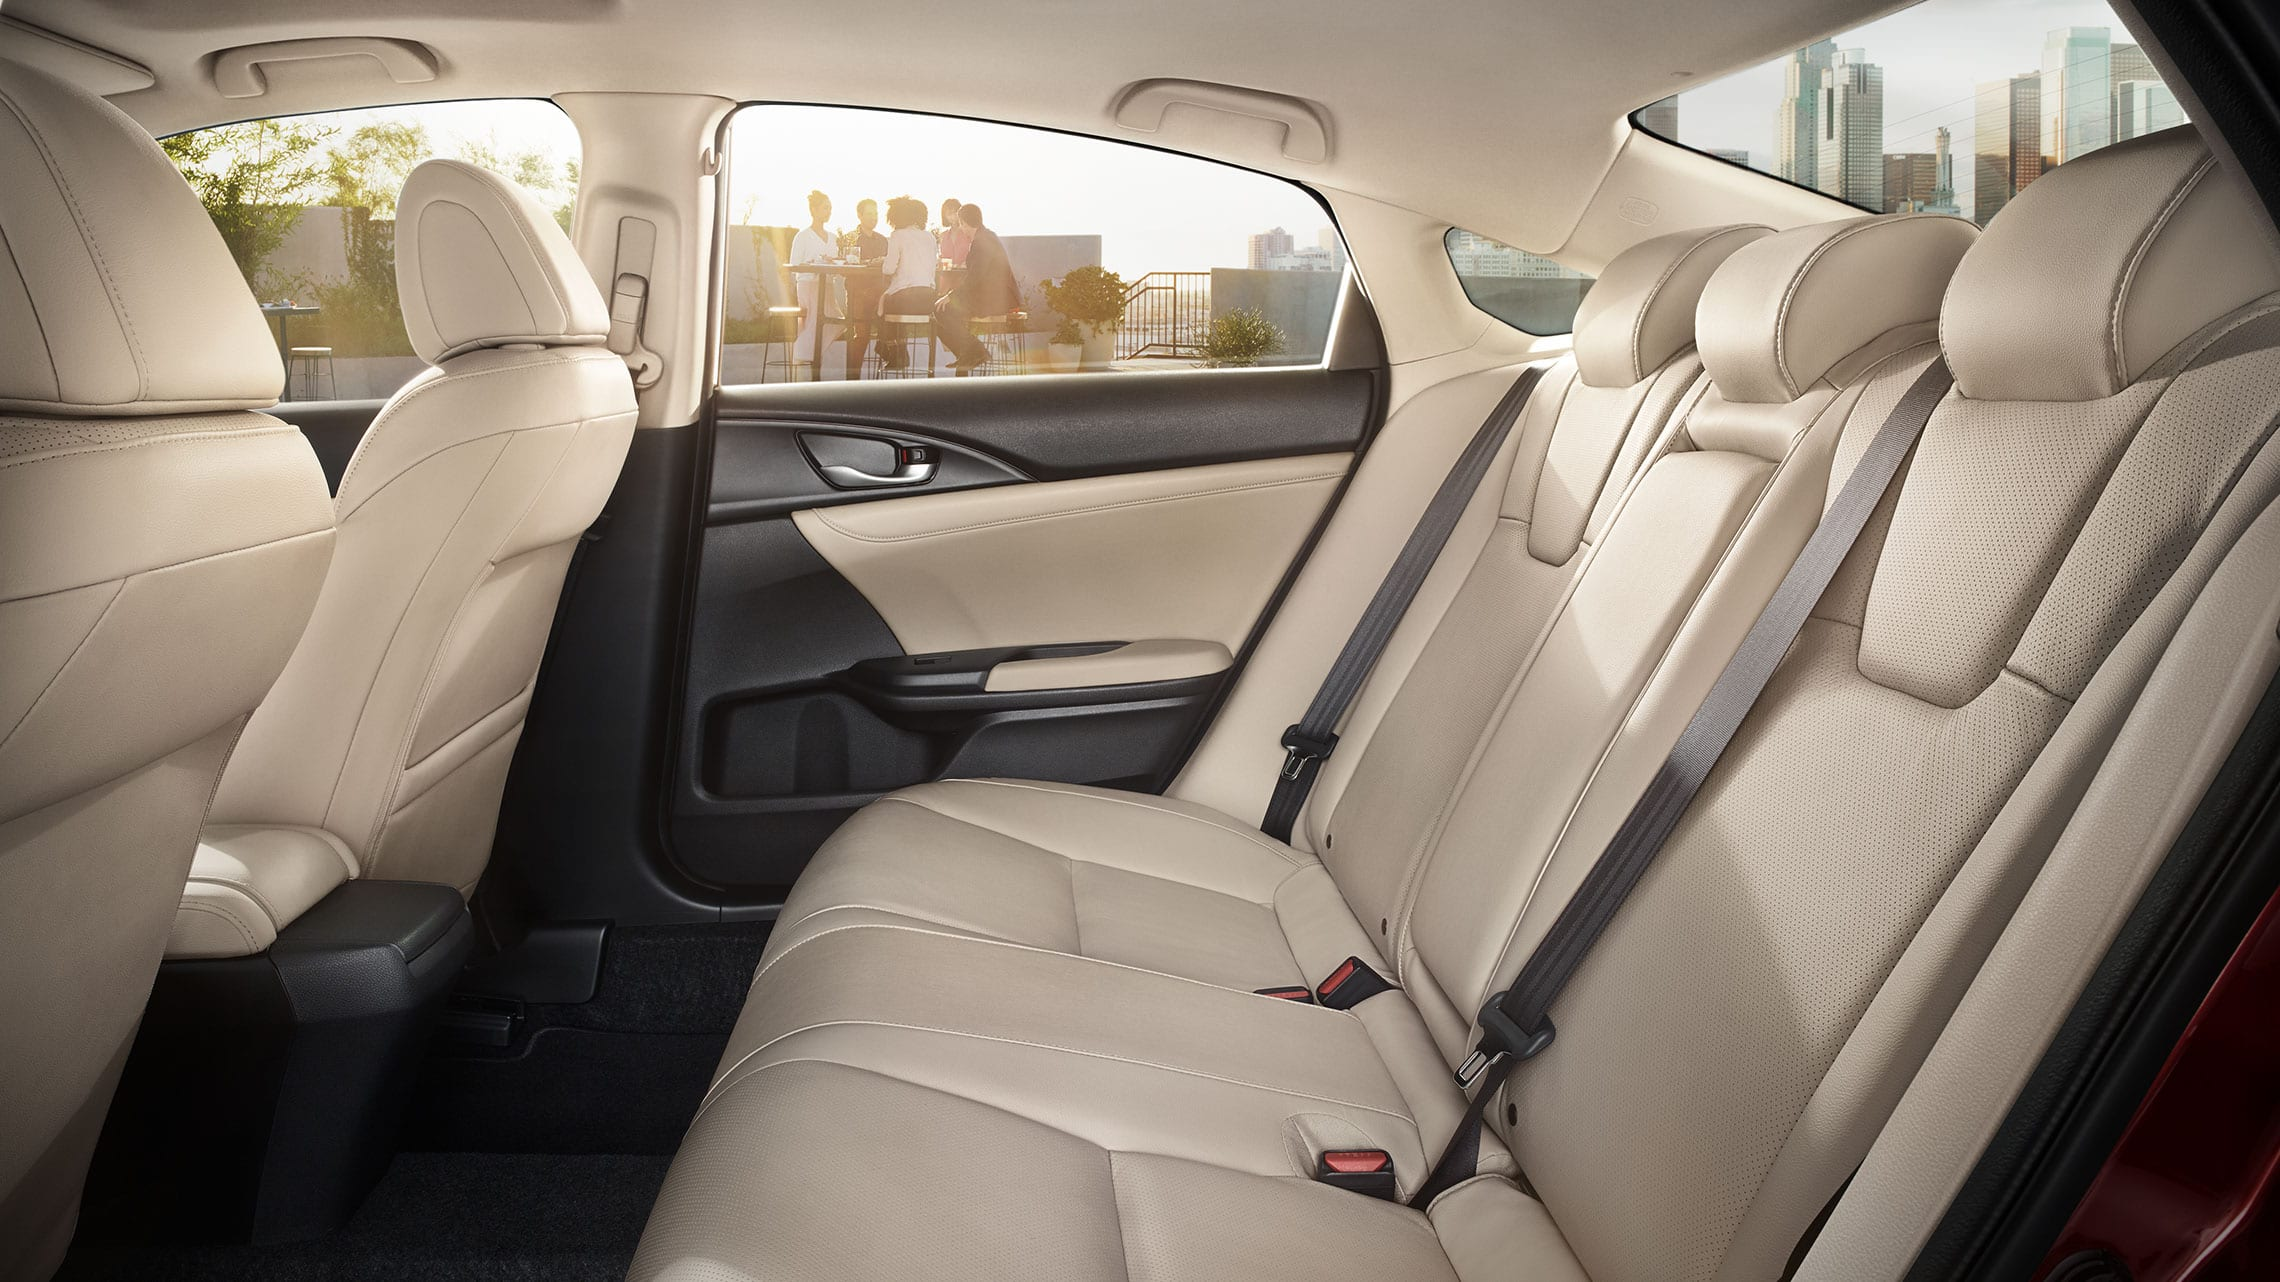 Interior side profile view of rear seats in 2020 Honda Insight with Ivory interior.